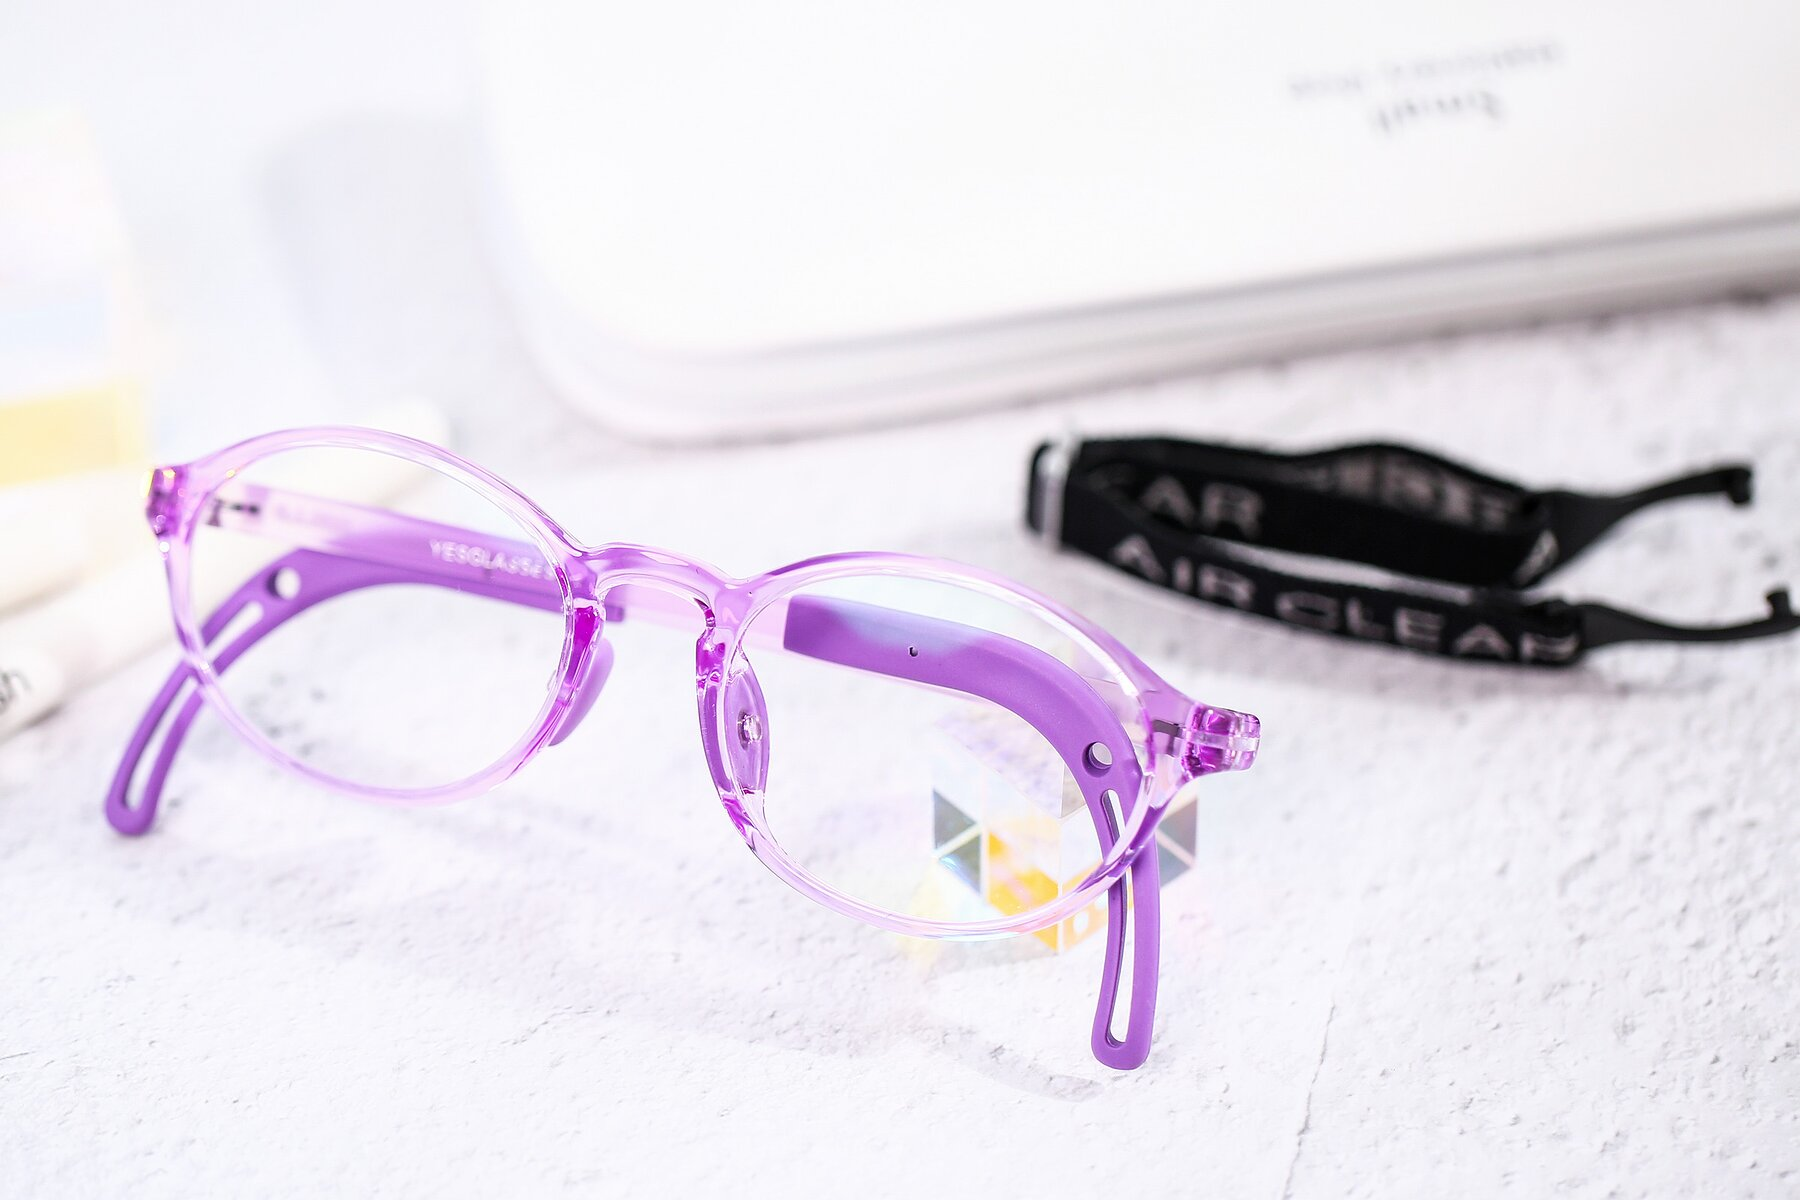 Lifestyle photography #1 of 8373 in Tranparent Purple with Clear Eyeglass Lenses